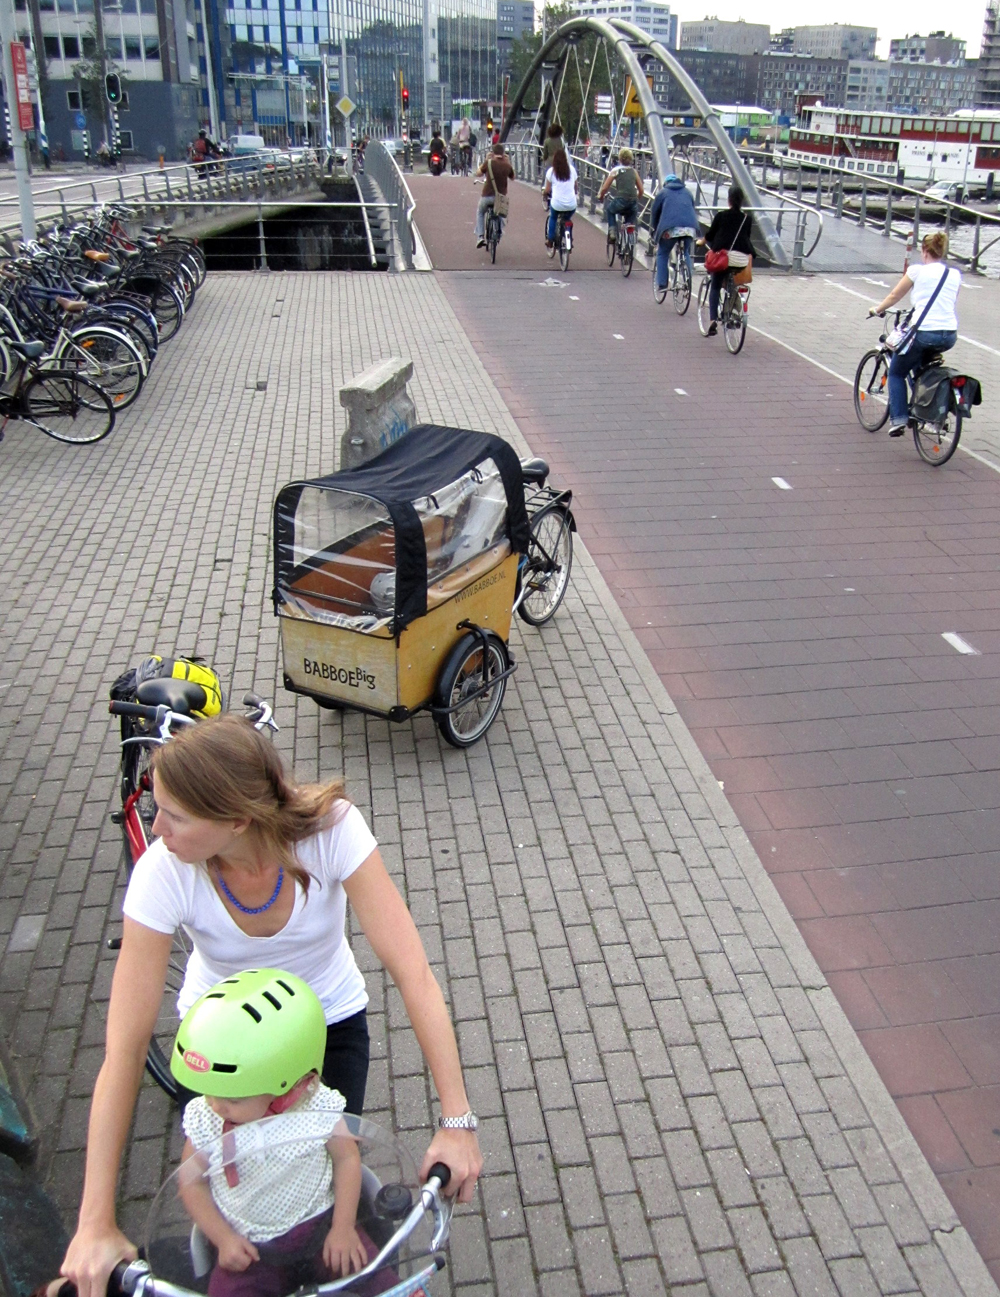 Exploring Amsterdam's vibrant streets by bike.